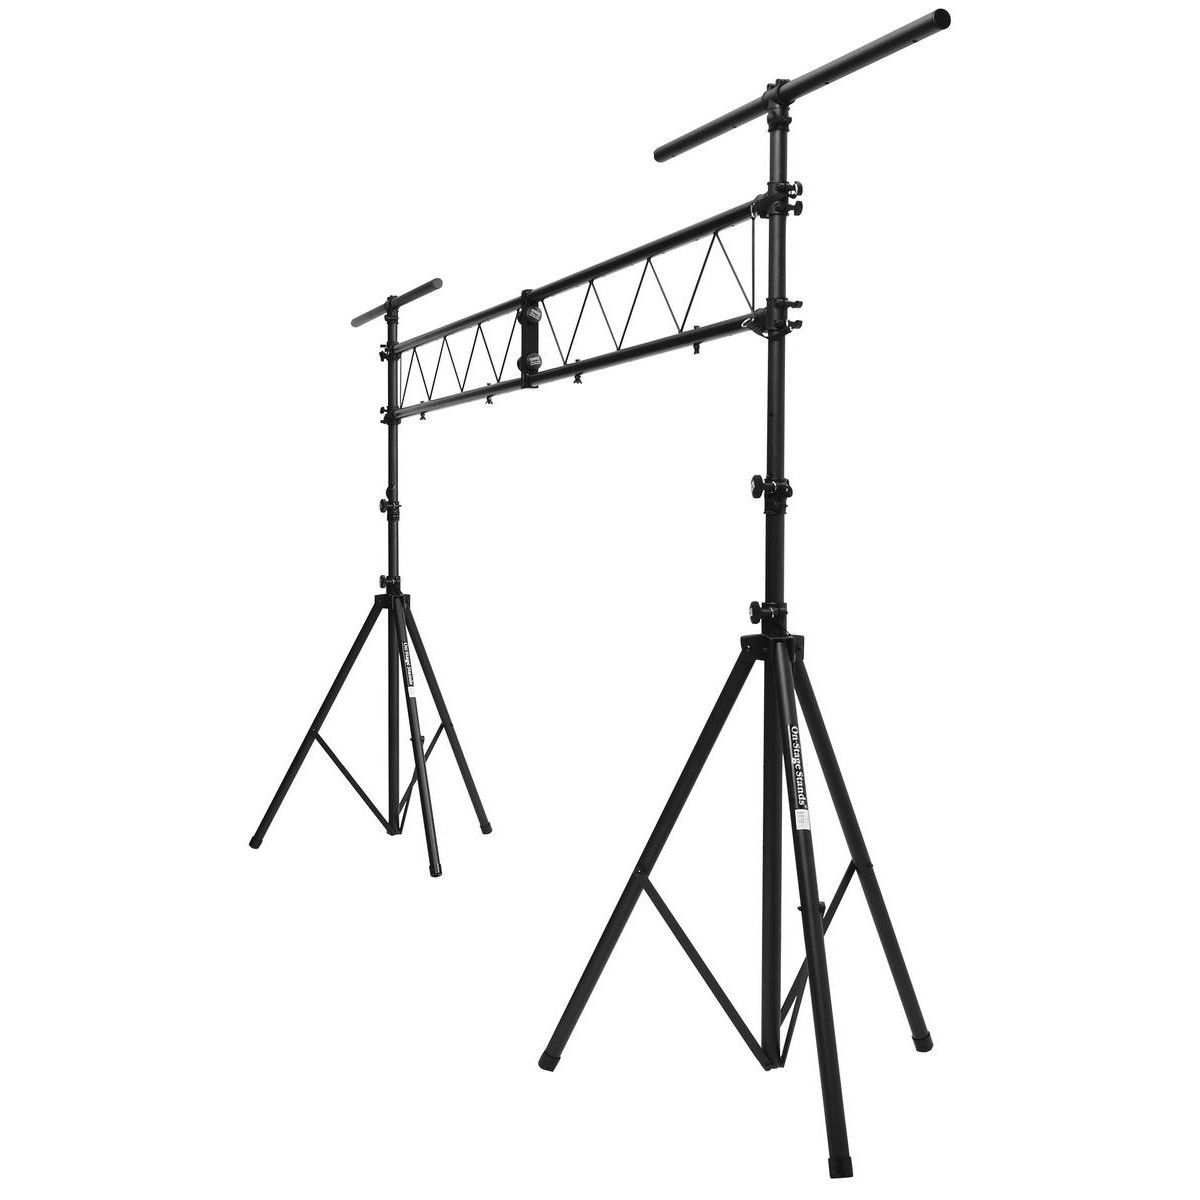 On Stage Stands Ls9790 Lighting Stand W 10 Foot Truss Lighting Light Accessories 10 Things